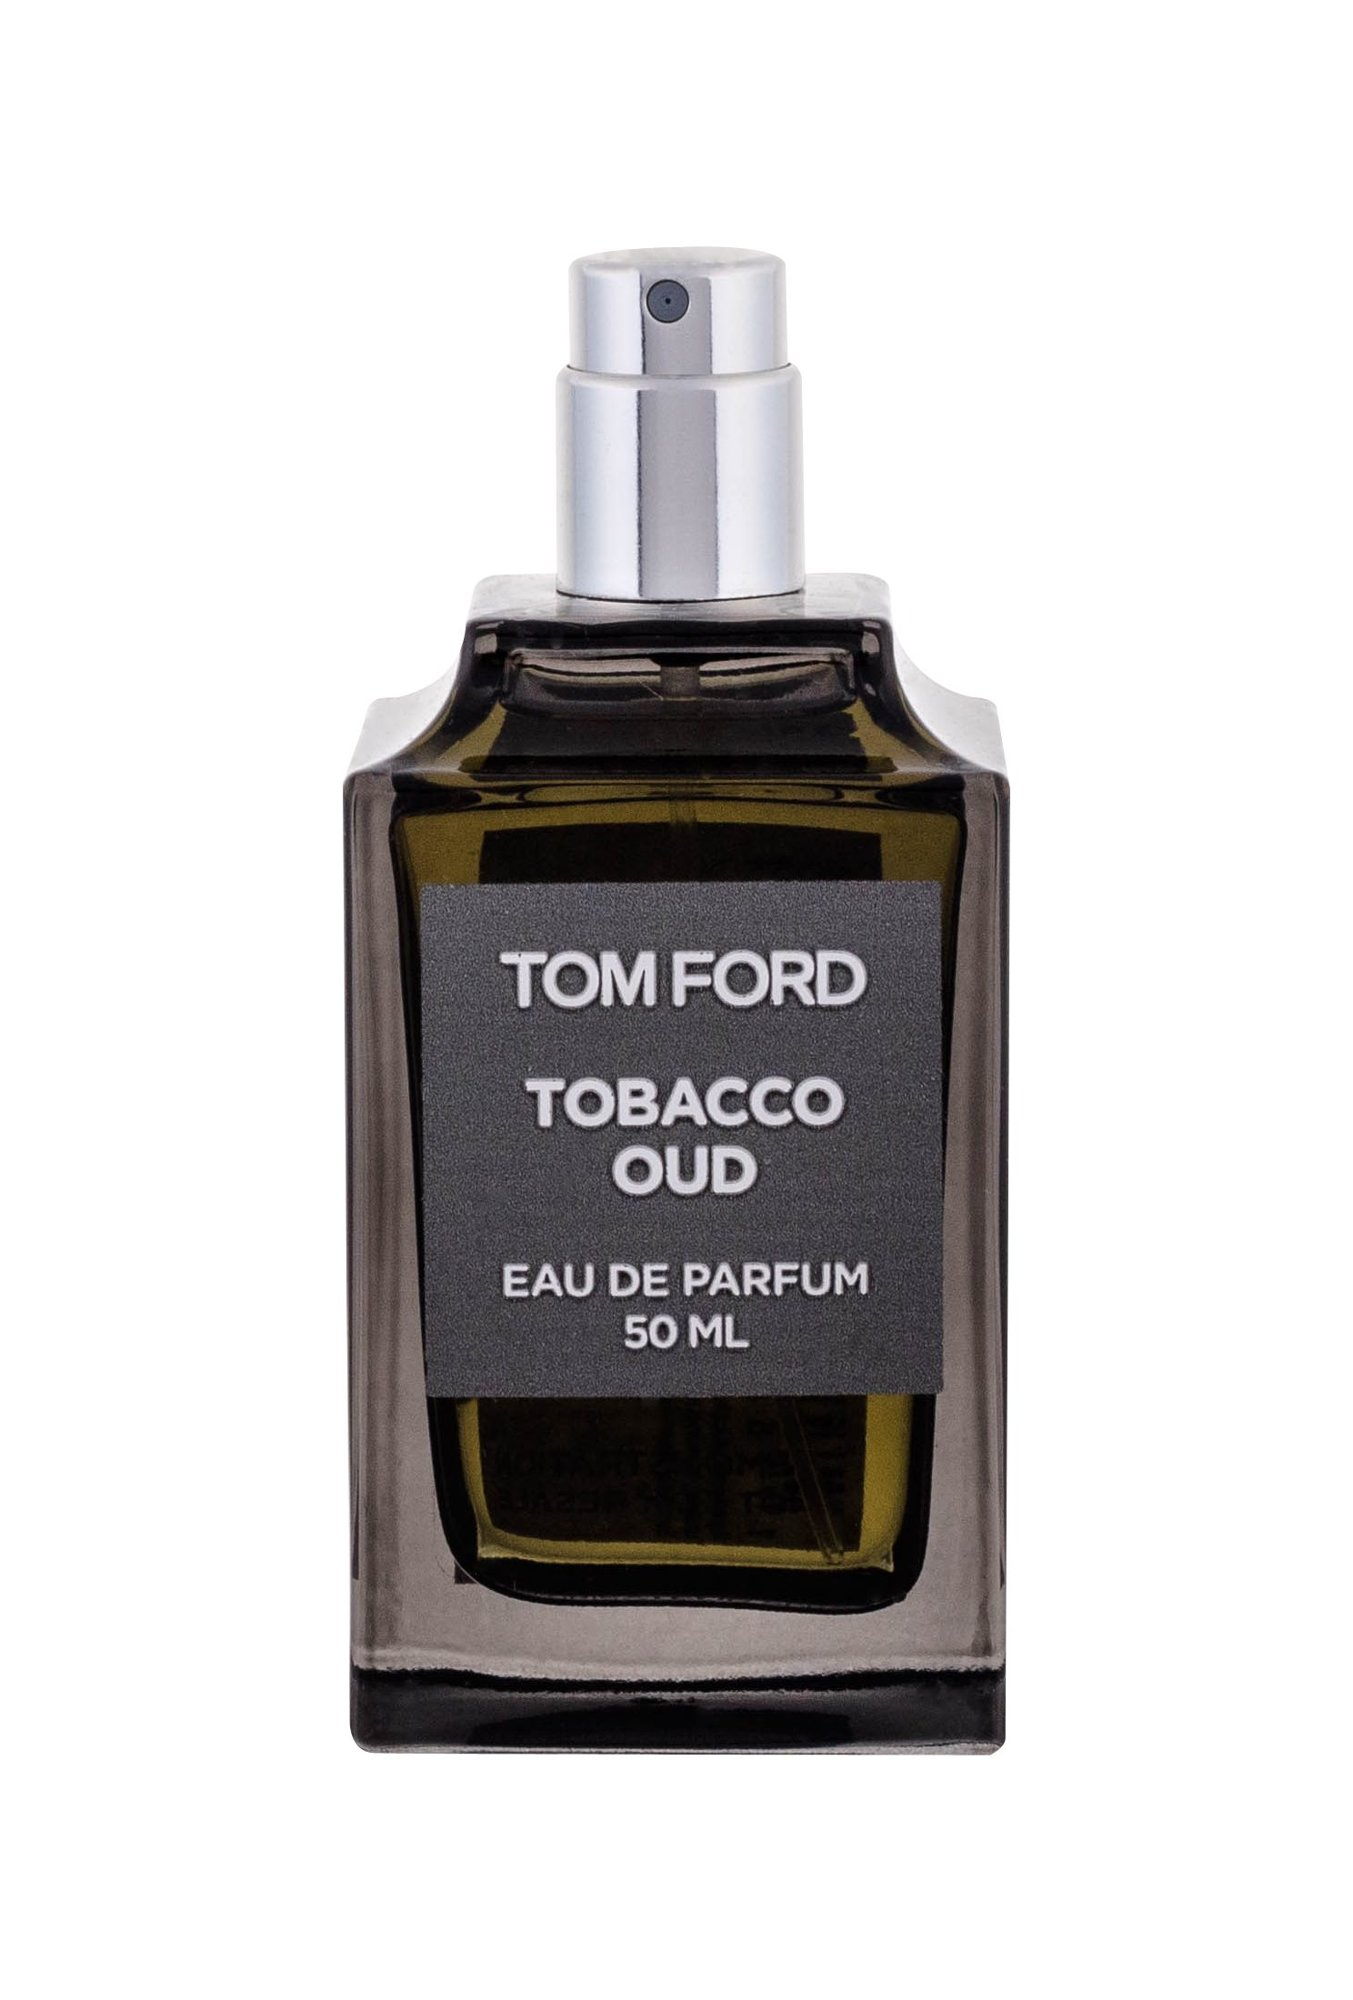 tom ford tobacco oud edp 50ml. Black Bedroom Furniture Sets. Home Design Ideas